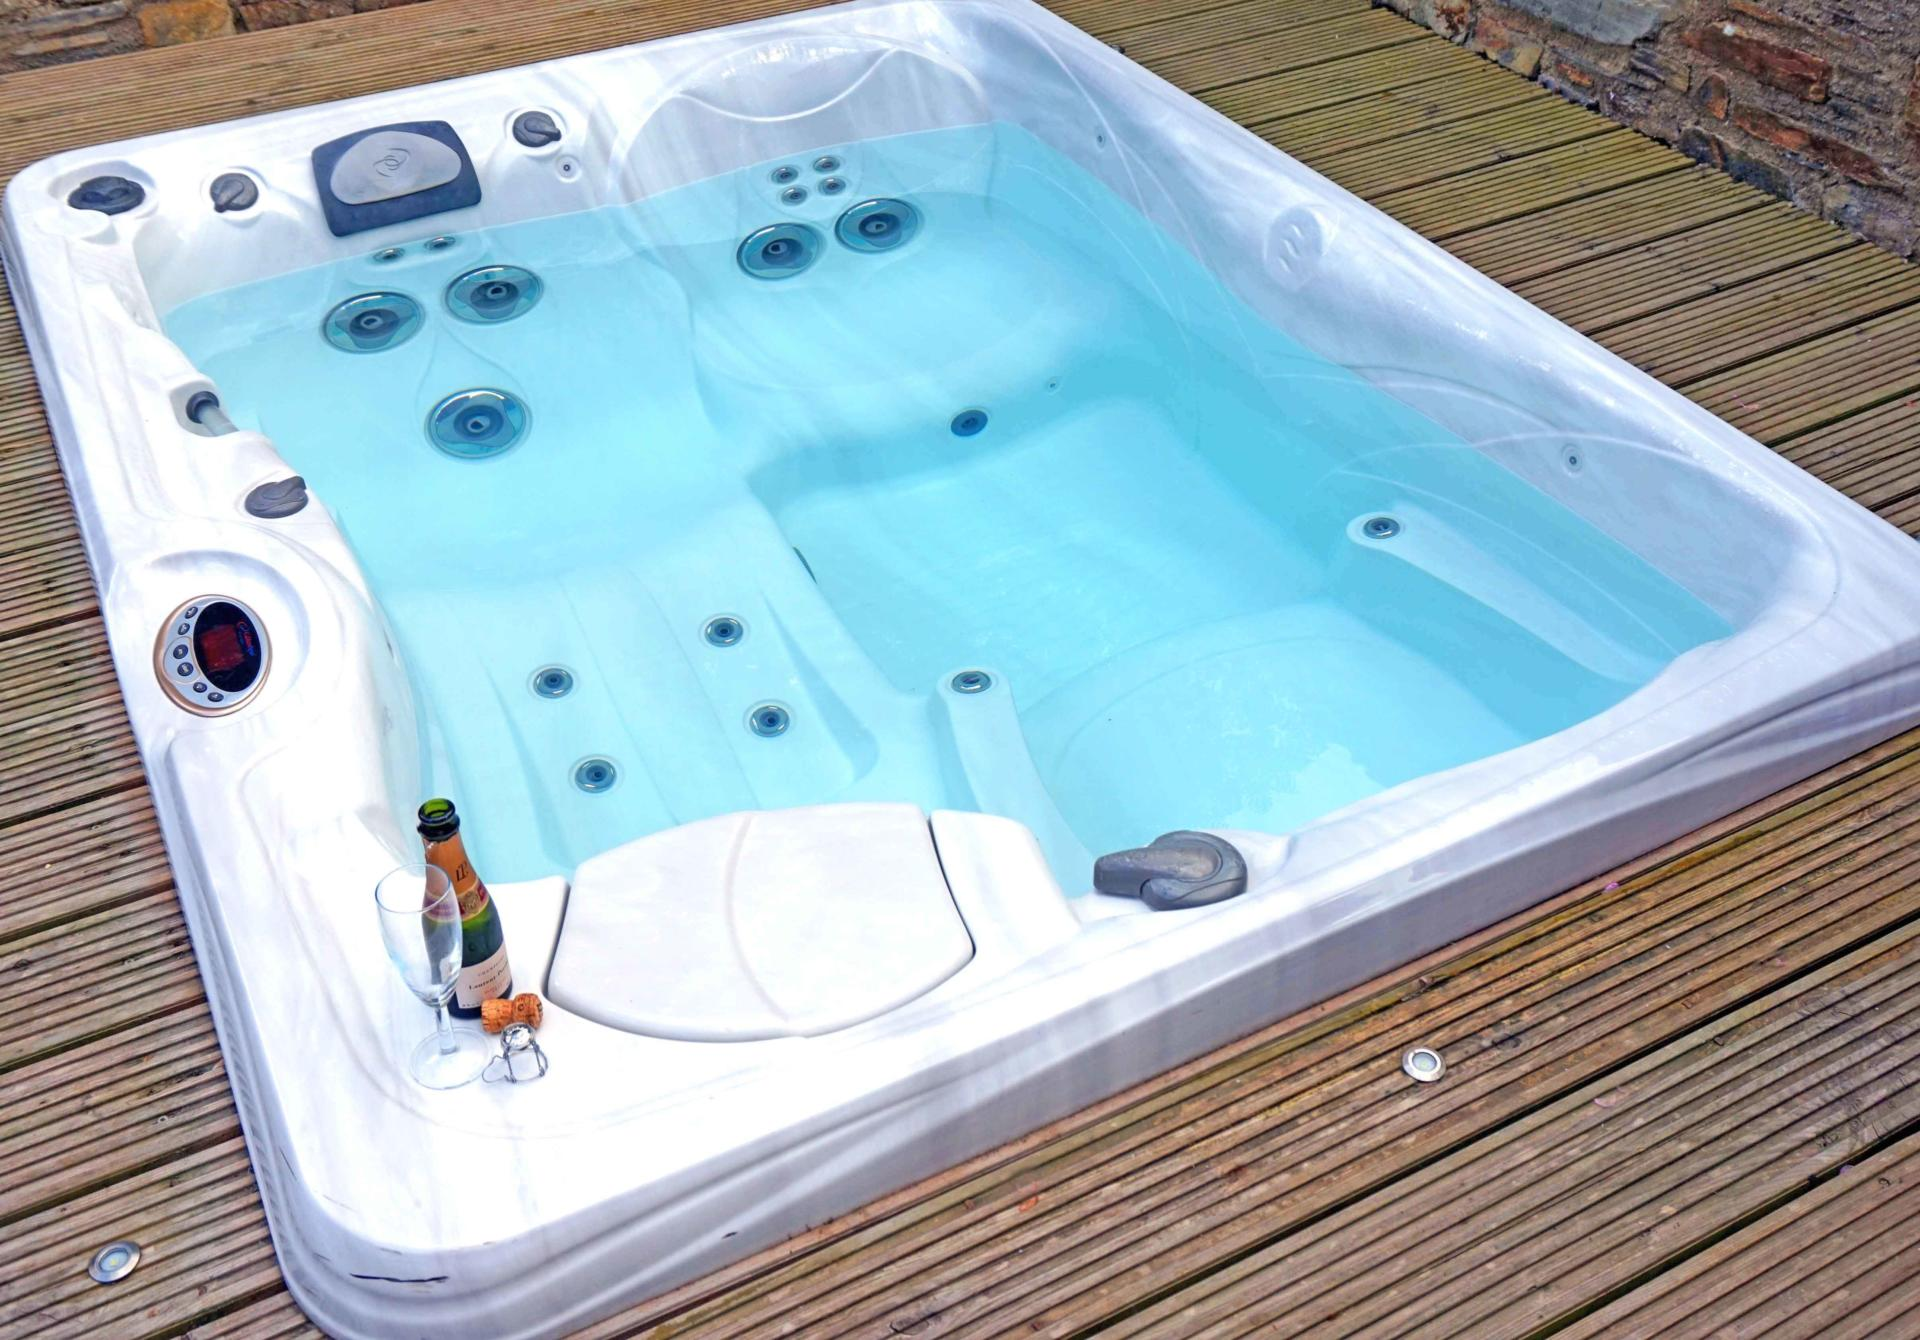 Top 5 UK Luxury Hotels with Outdoor Hot Tubs - The Foodaholic